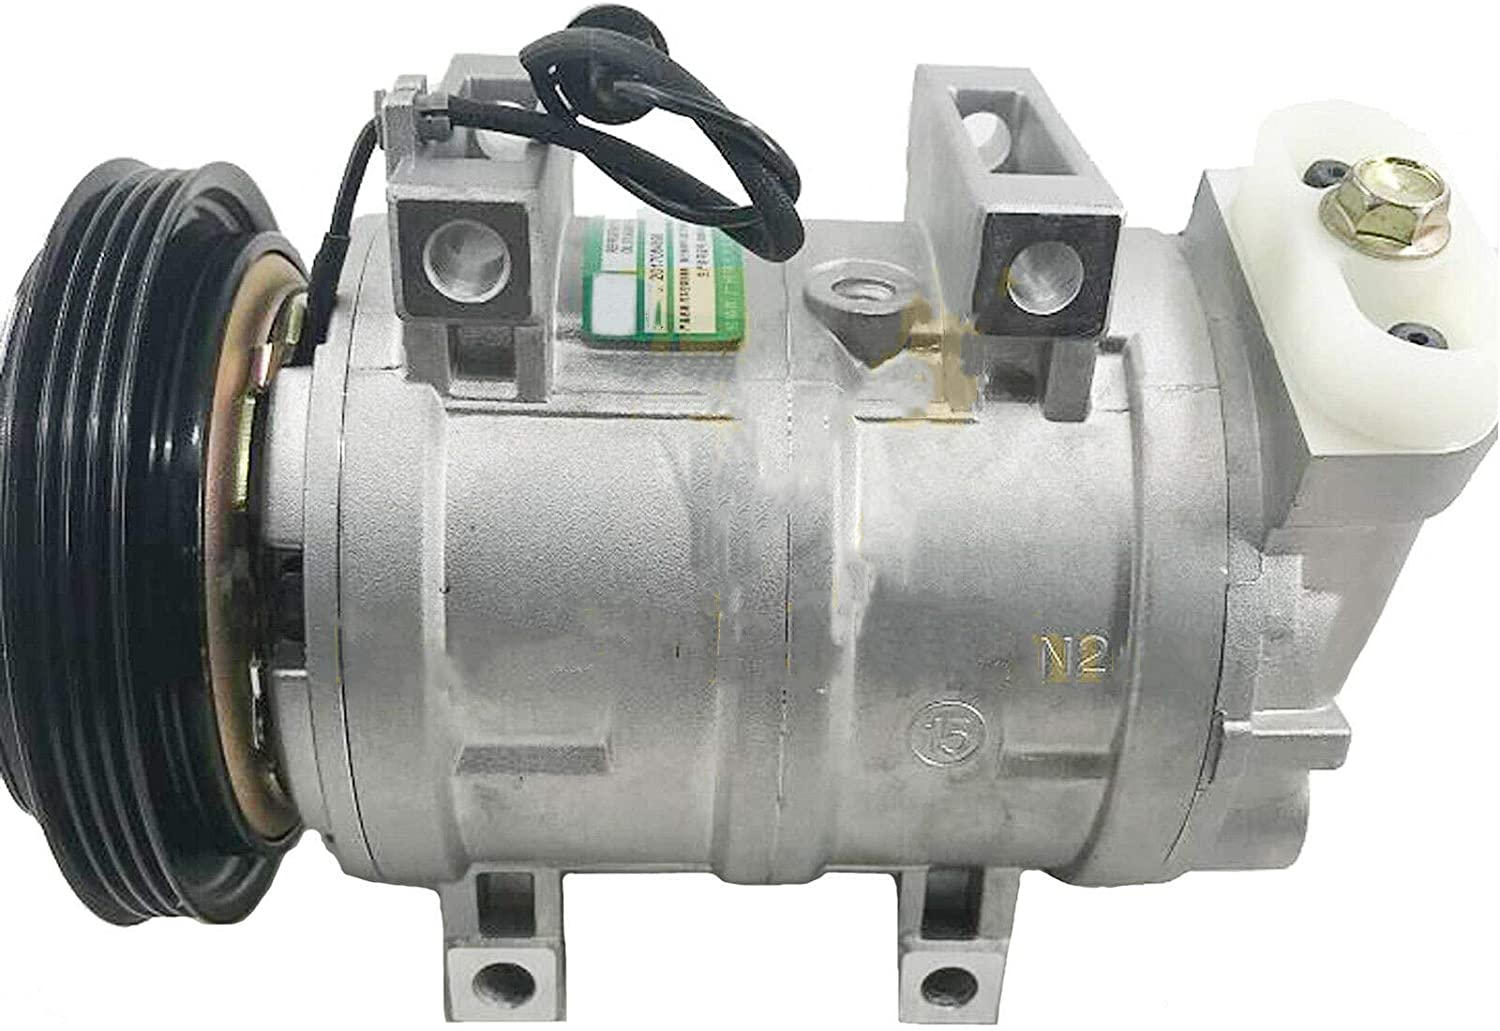 506211-7270 A//C Compressor with Clutch Assy for Nissan 2000UD// 1800HD Air Conditioning Compressor with Clutch Assy AC Compressor Spare Parts with 3 Month Warranty